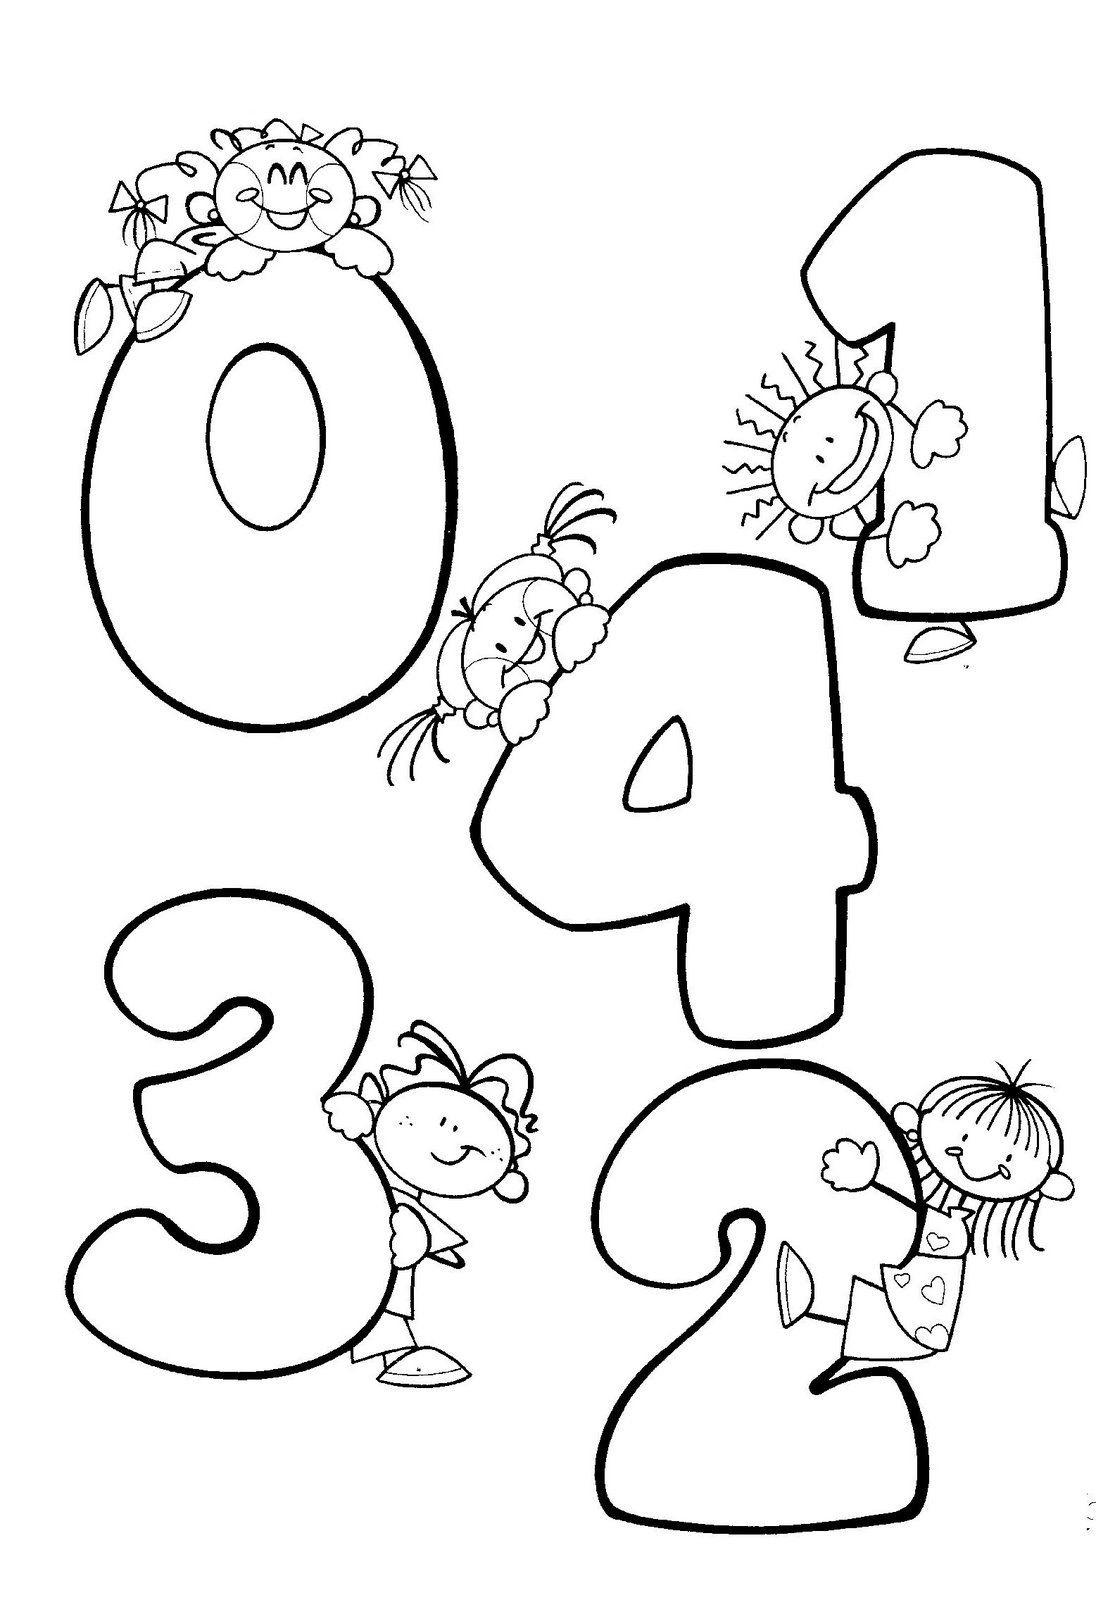 Childrens coloring pages of nativity - Nativity Printable Coloring Pages Animated Gifs And Children Gallery